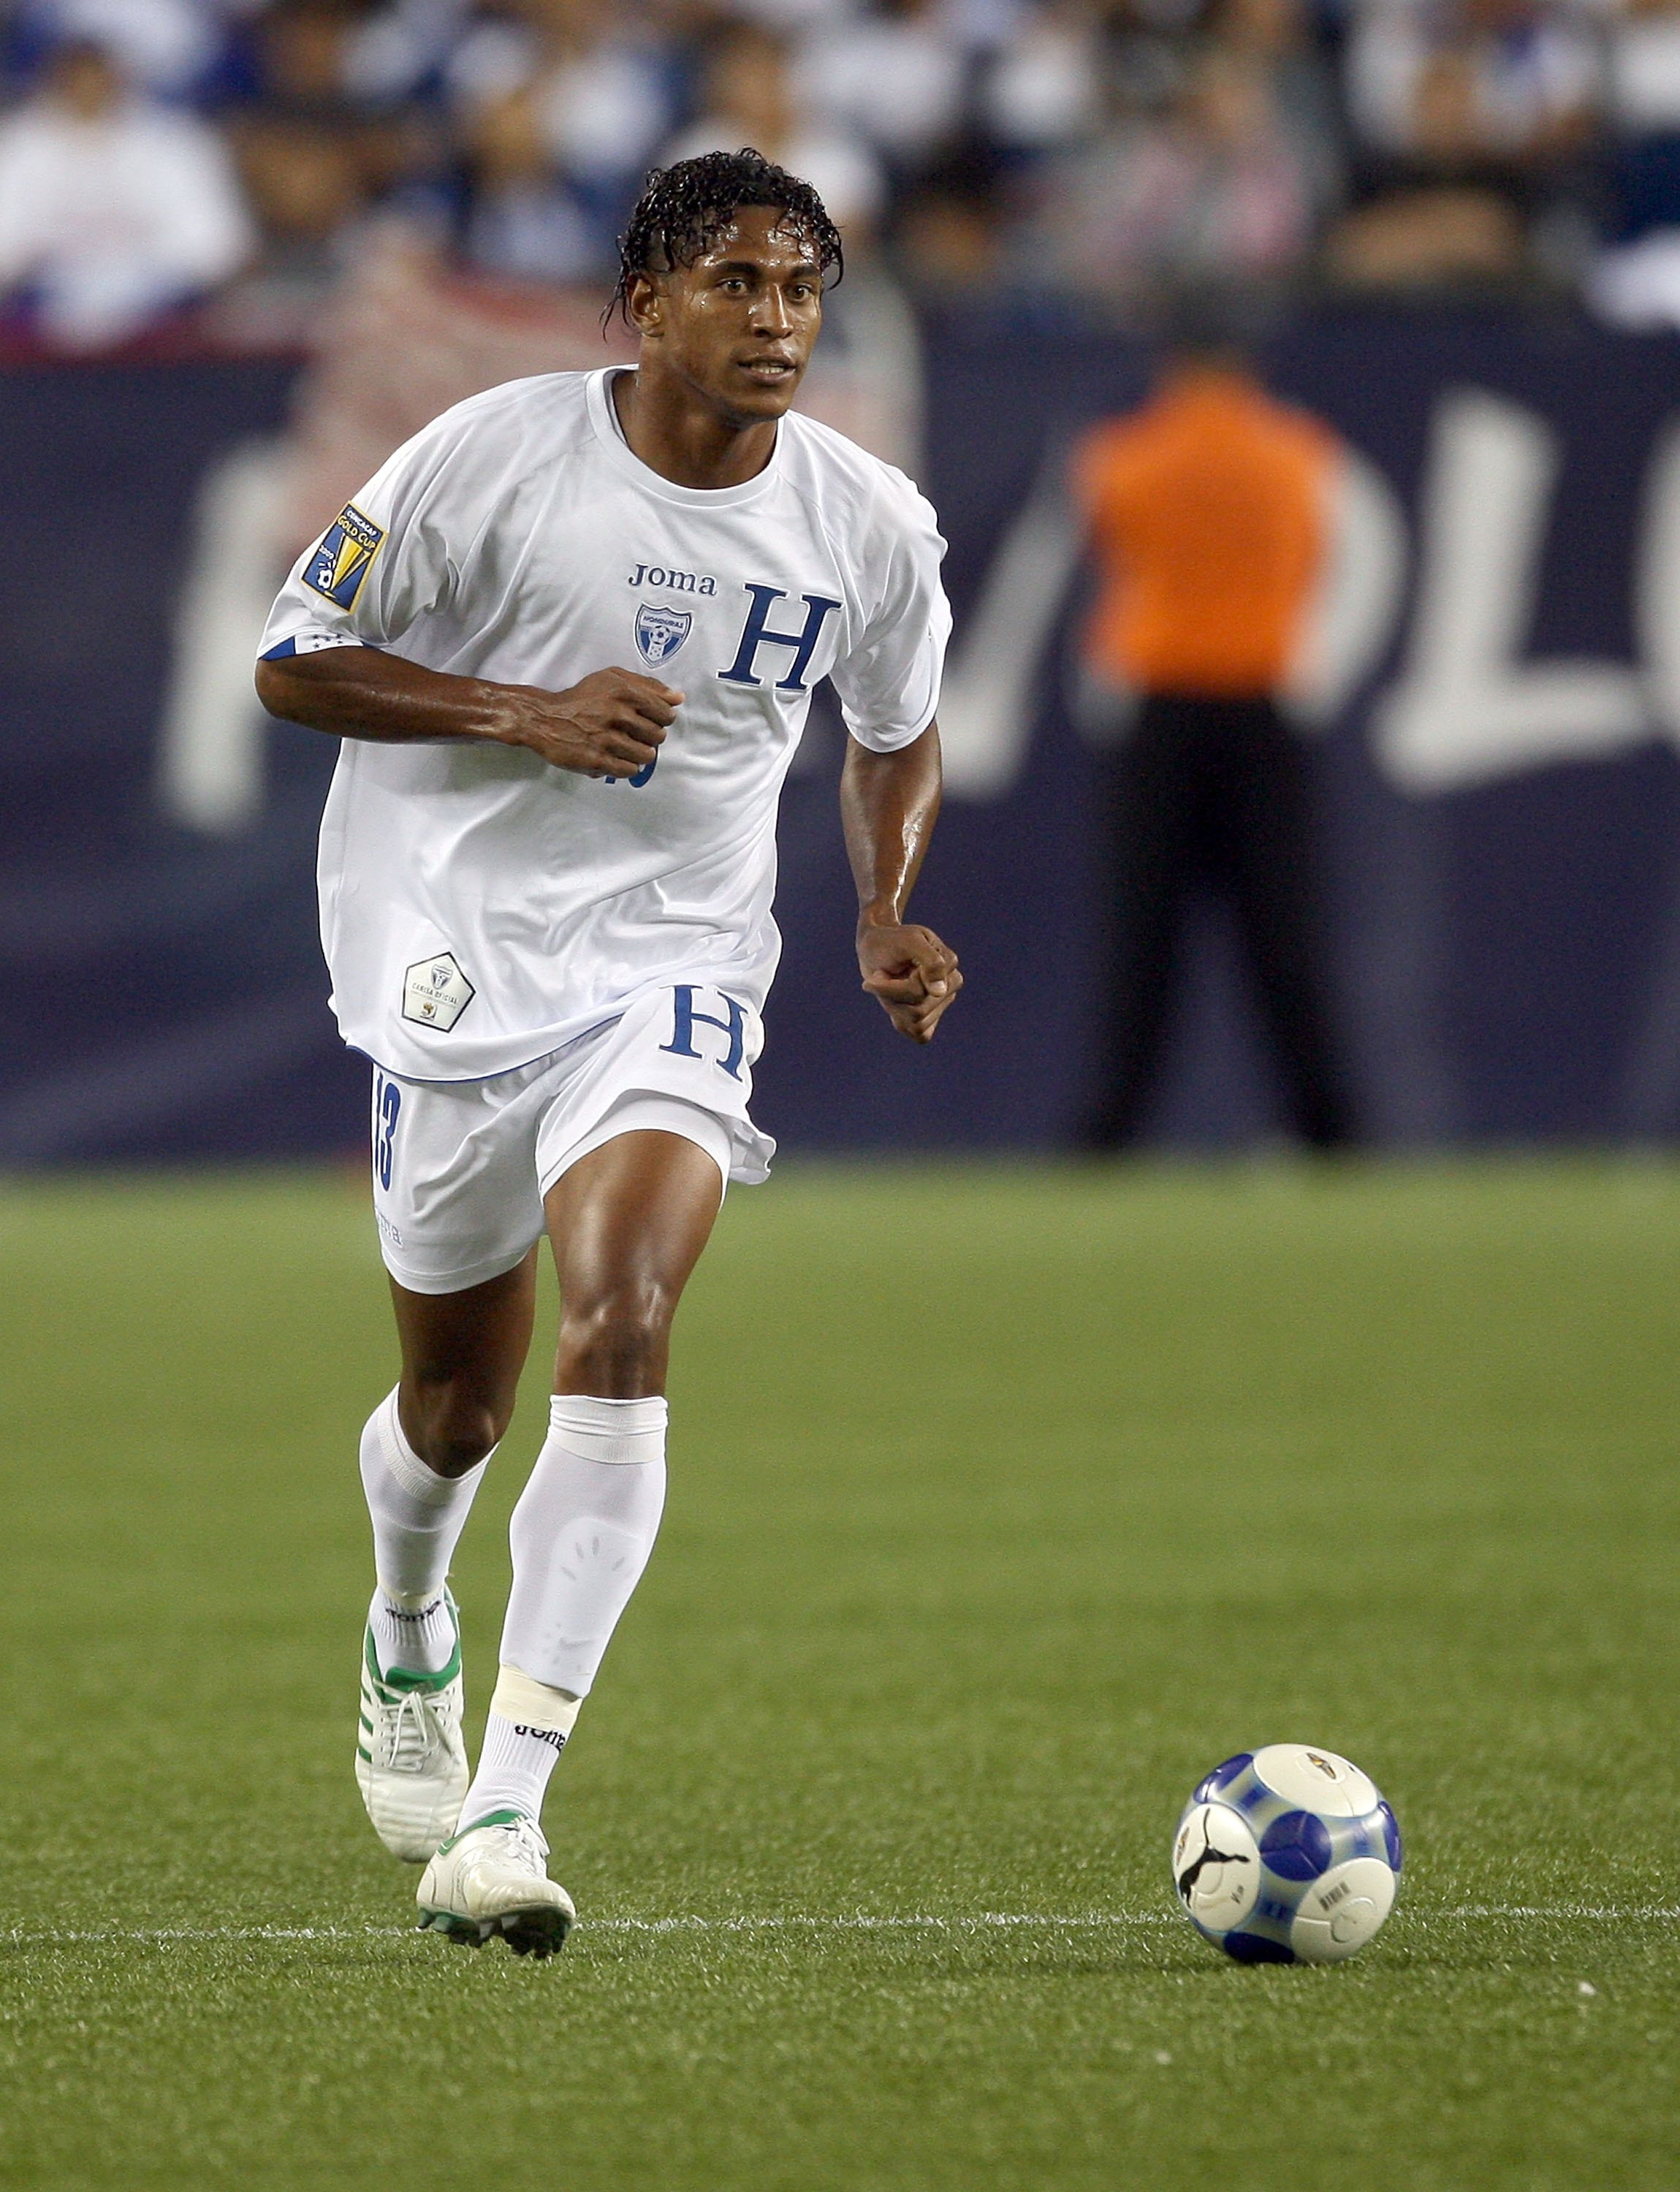 FOXBOROUGH, MA - JULY 11:  Carlo Costly #13 of Honduras competes against Grenada during 2009 CONCACAF Gold Cup competition at Gillette Stadium on July 11, 2009 in Foxborough, Massachusetts. (Photo by Jim Rogash/Getty Images)